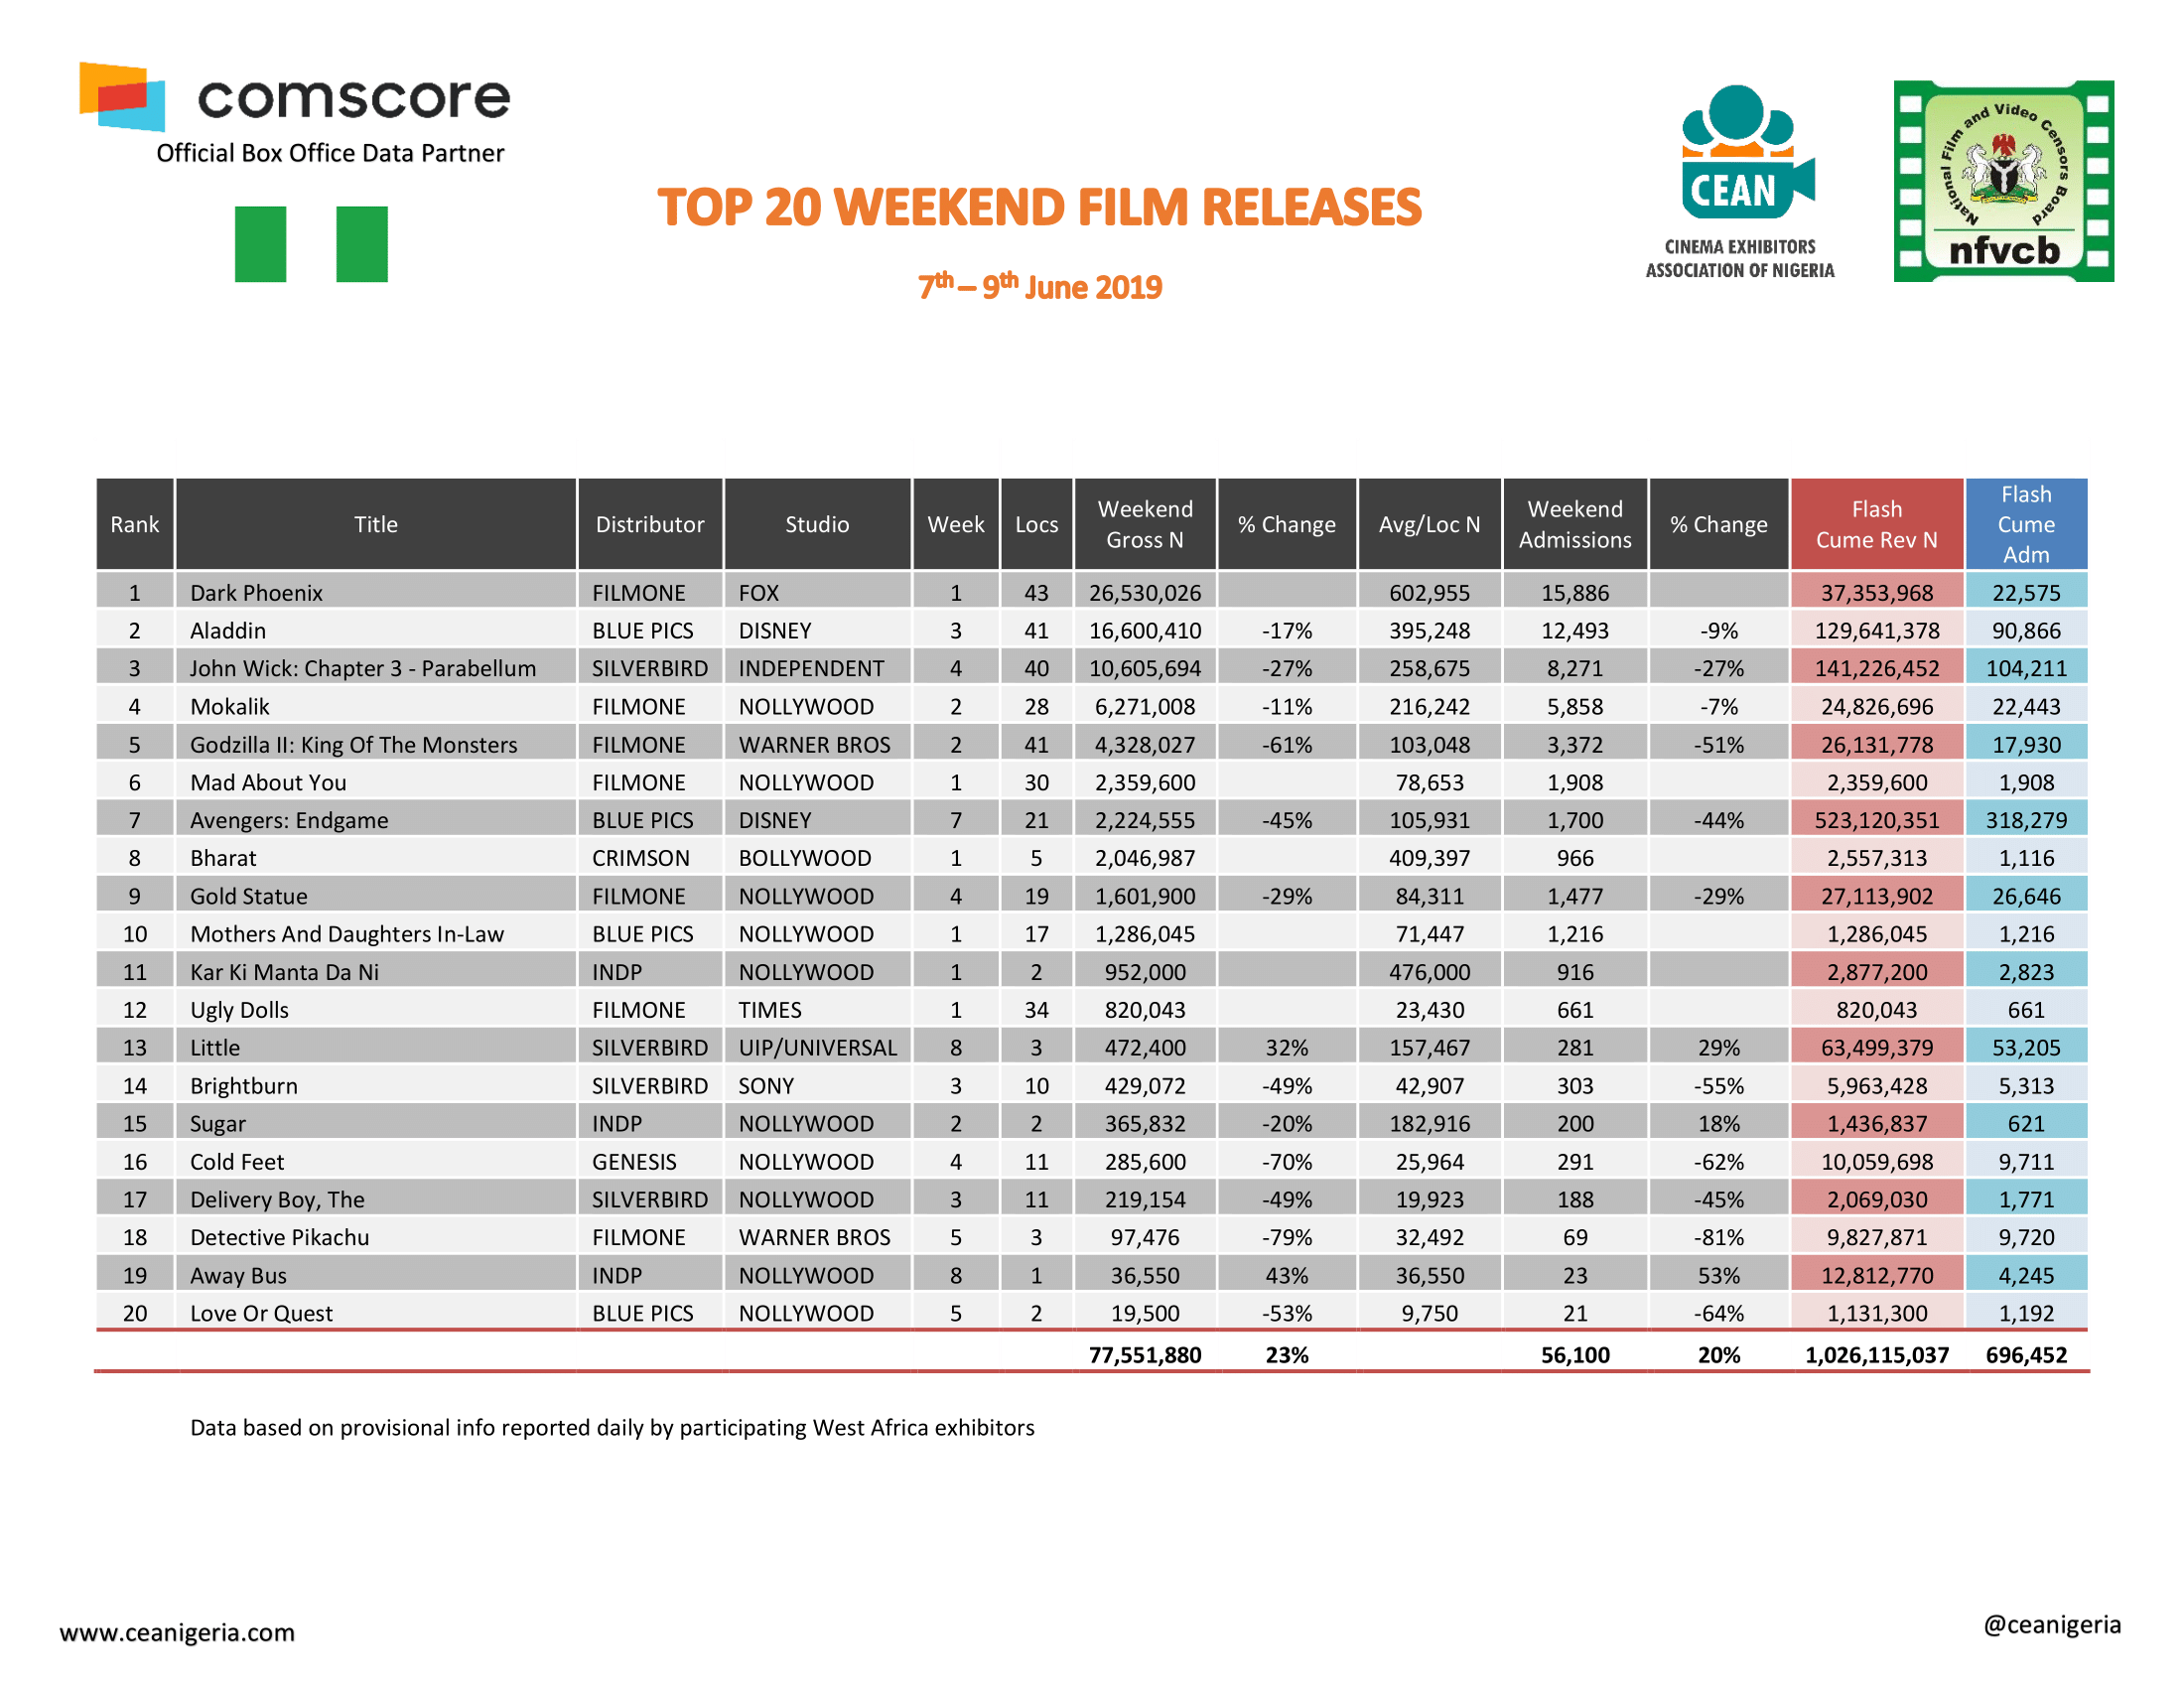 Top 20 Films 7th 9th Jun 2019 1